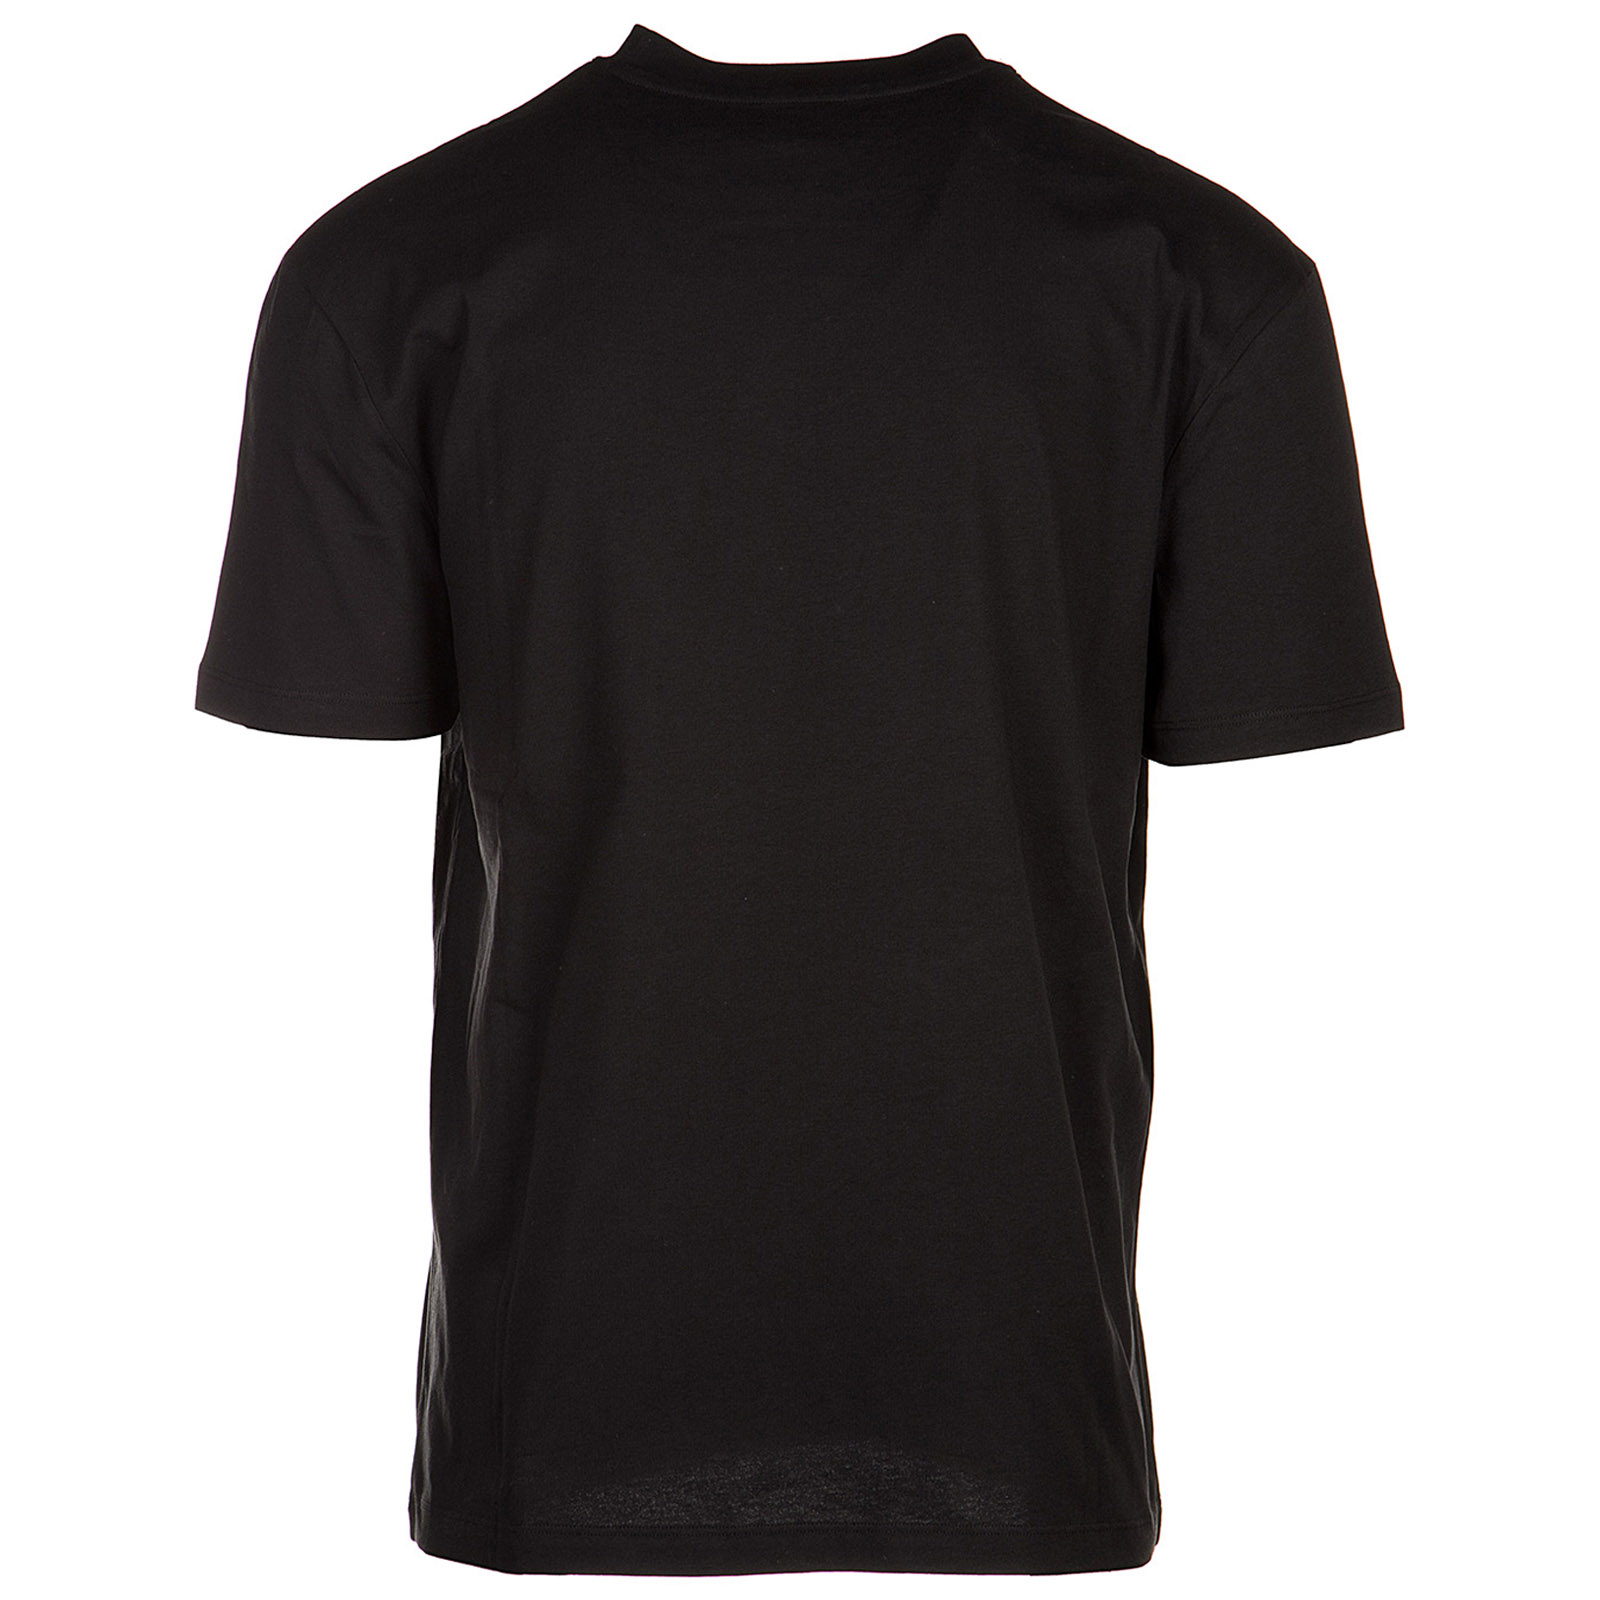 Men's short sleeve t-shirt crew neckline jumper mcq gothic